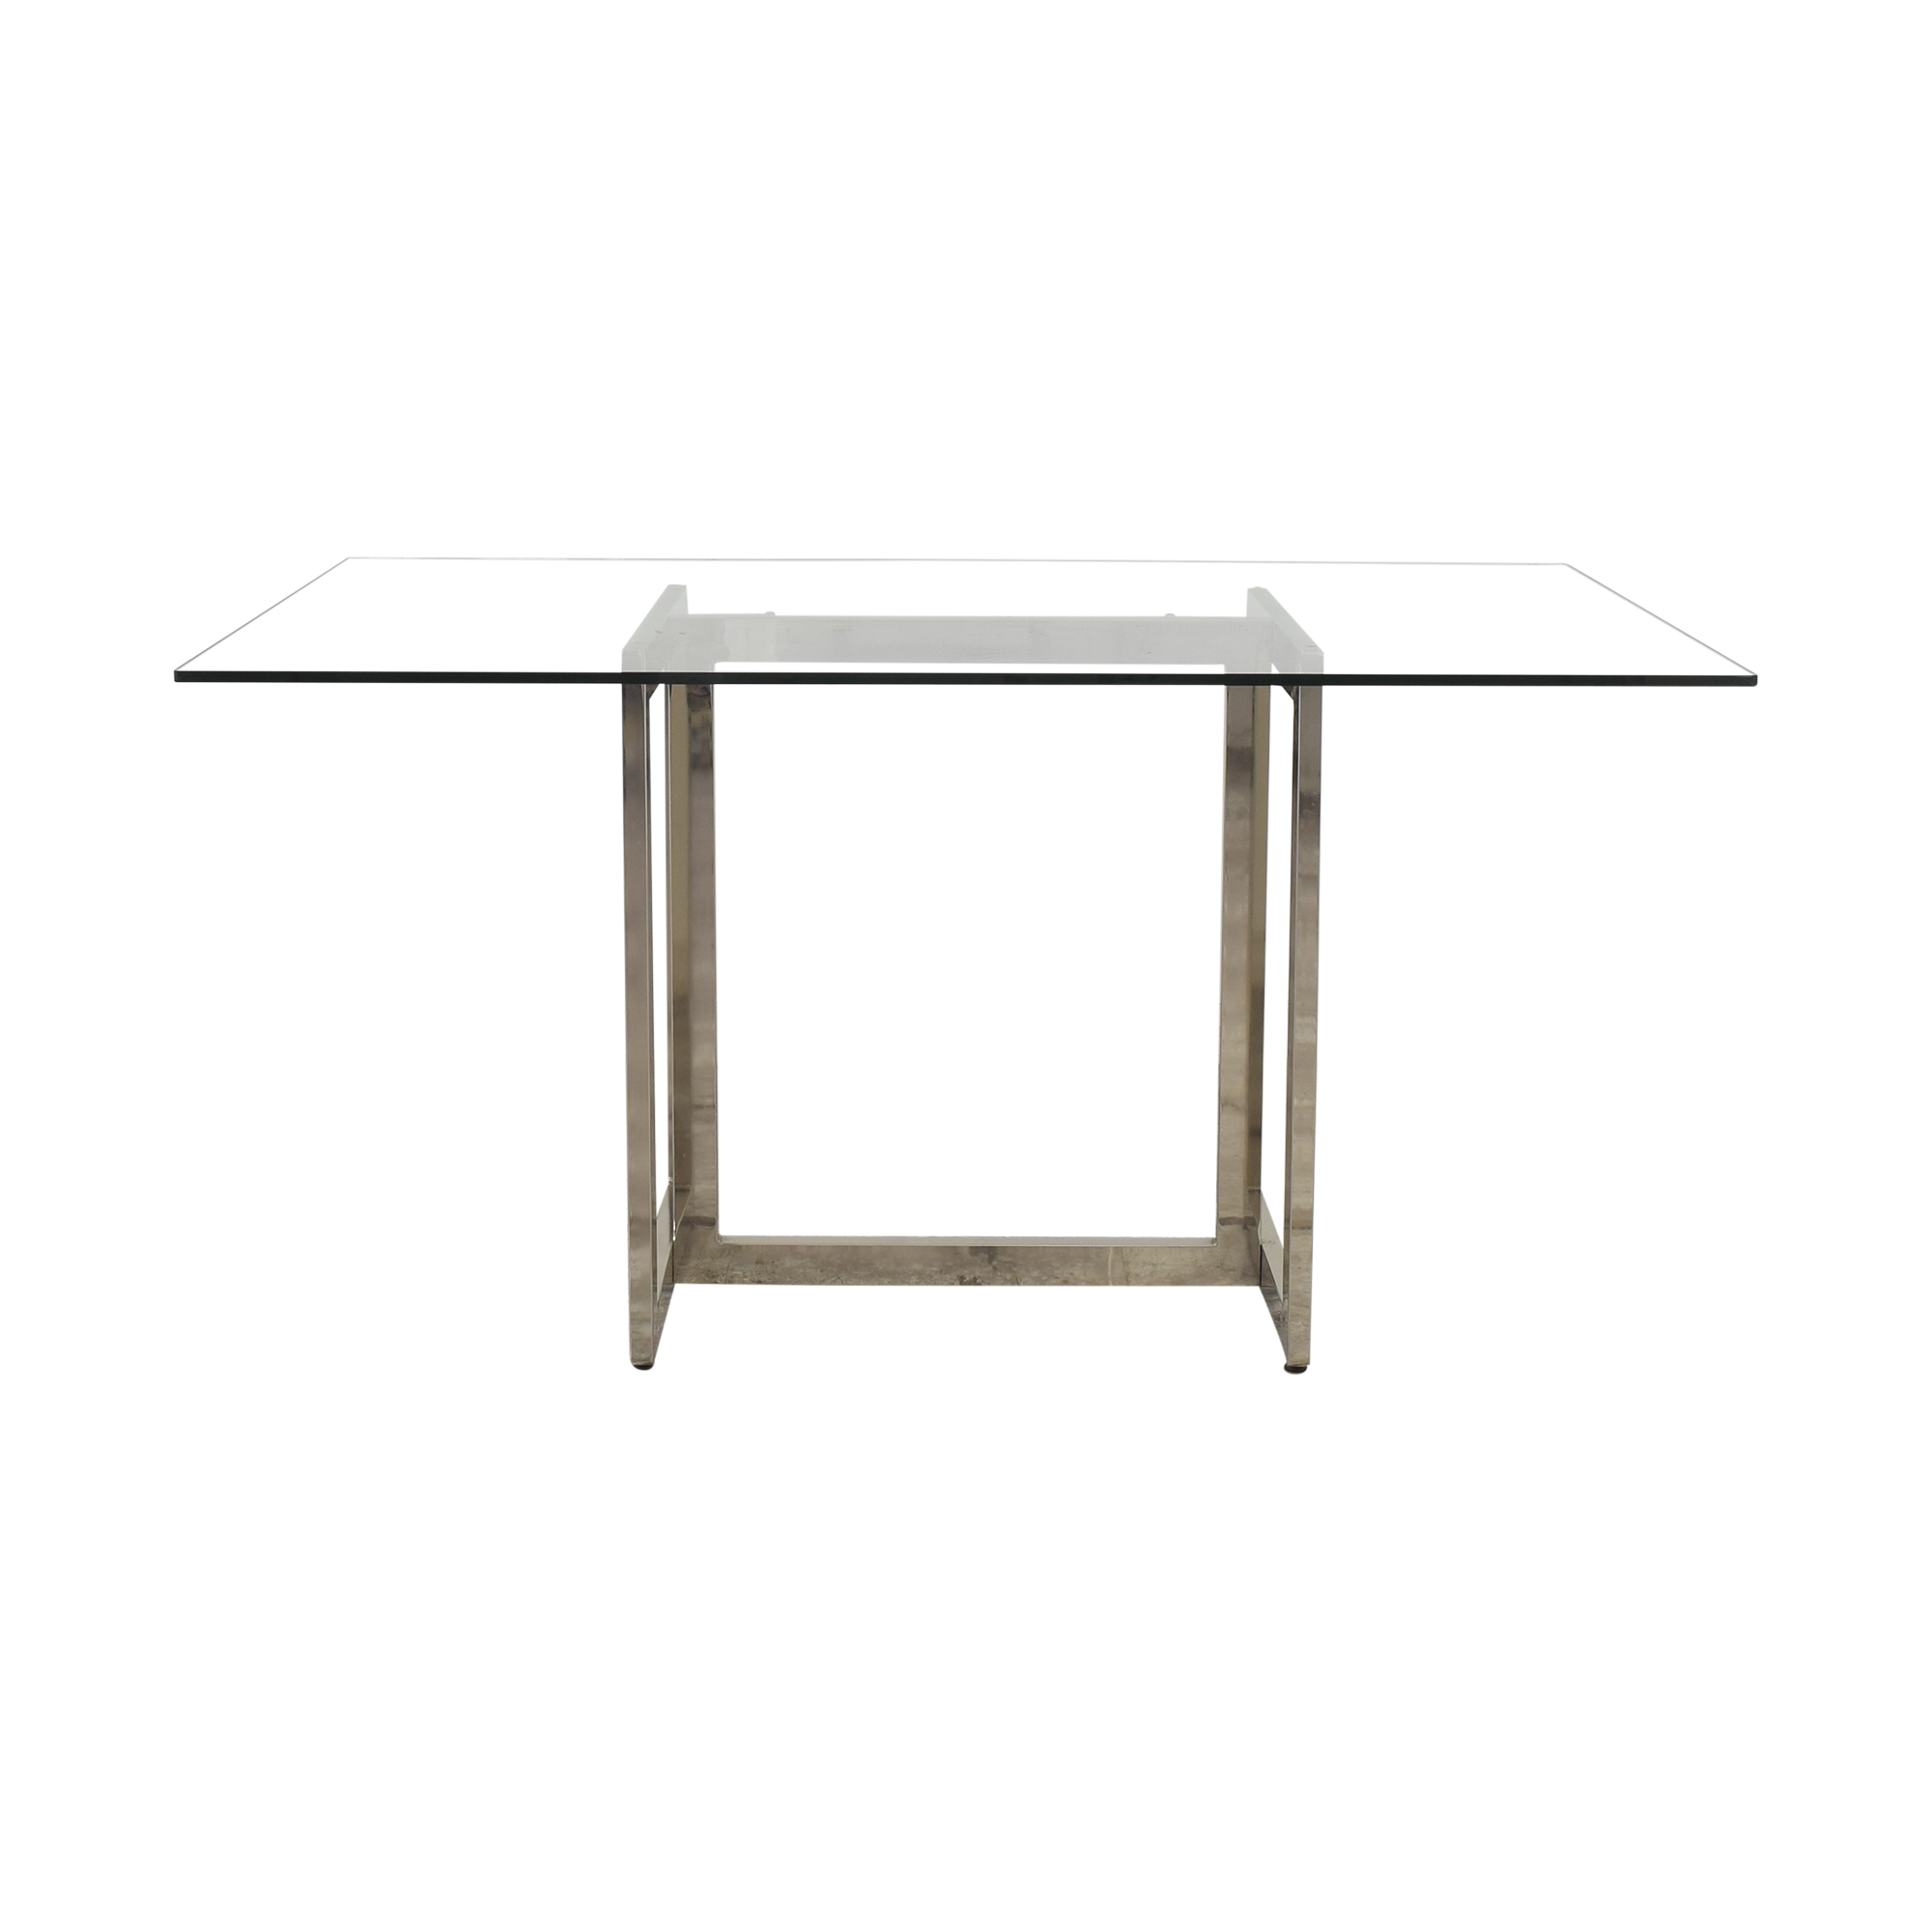 West Elm West Elm Rectangular Glass and Chrome Dining Table coupon